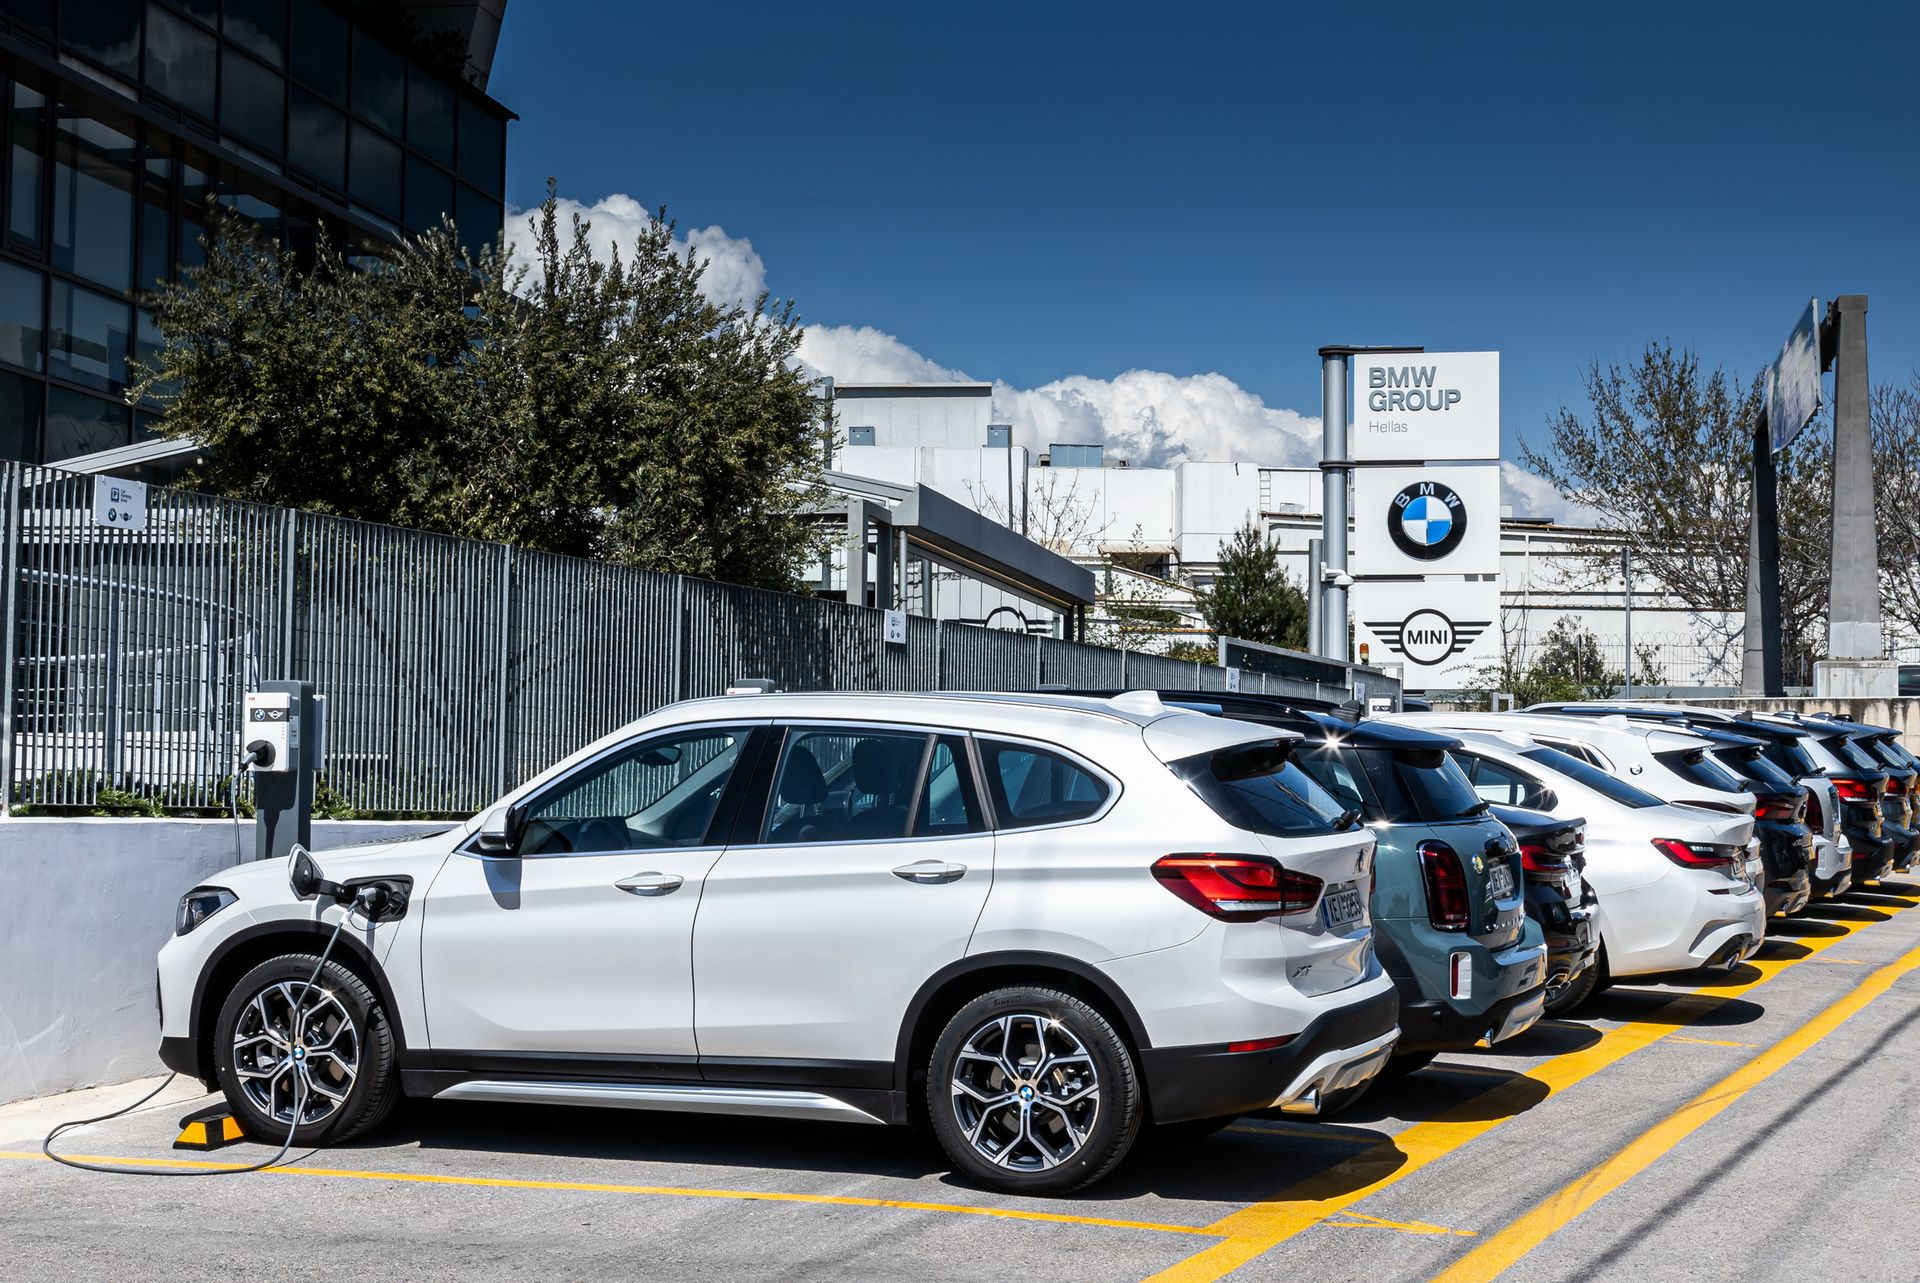 BMW-Group-Hellas-EV-Electric-Chargers-Charging-8